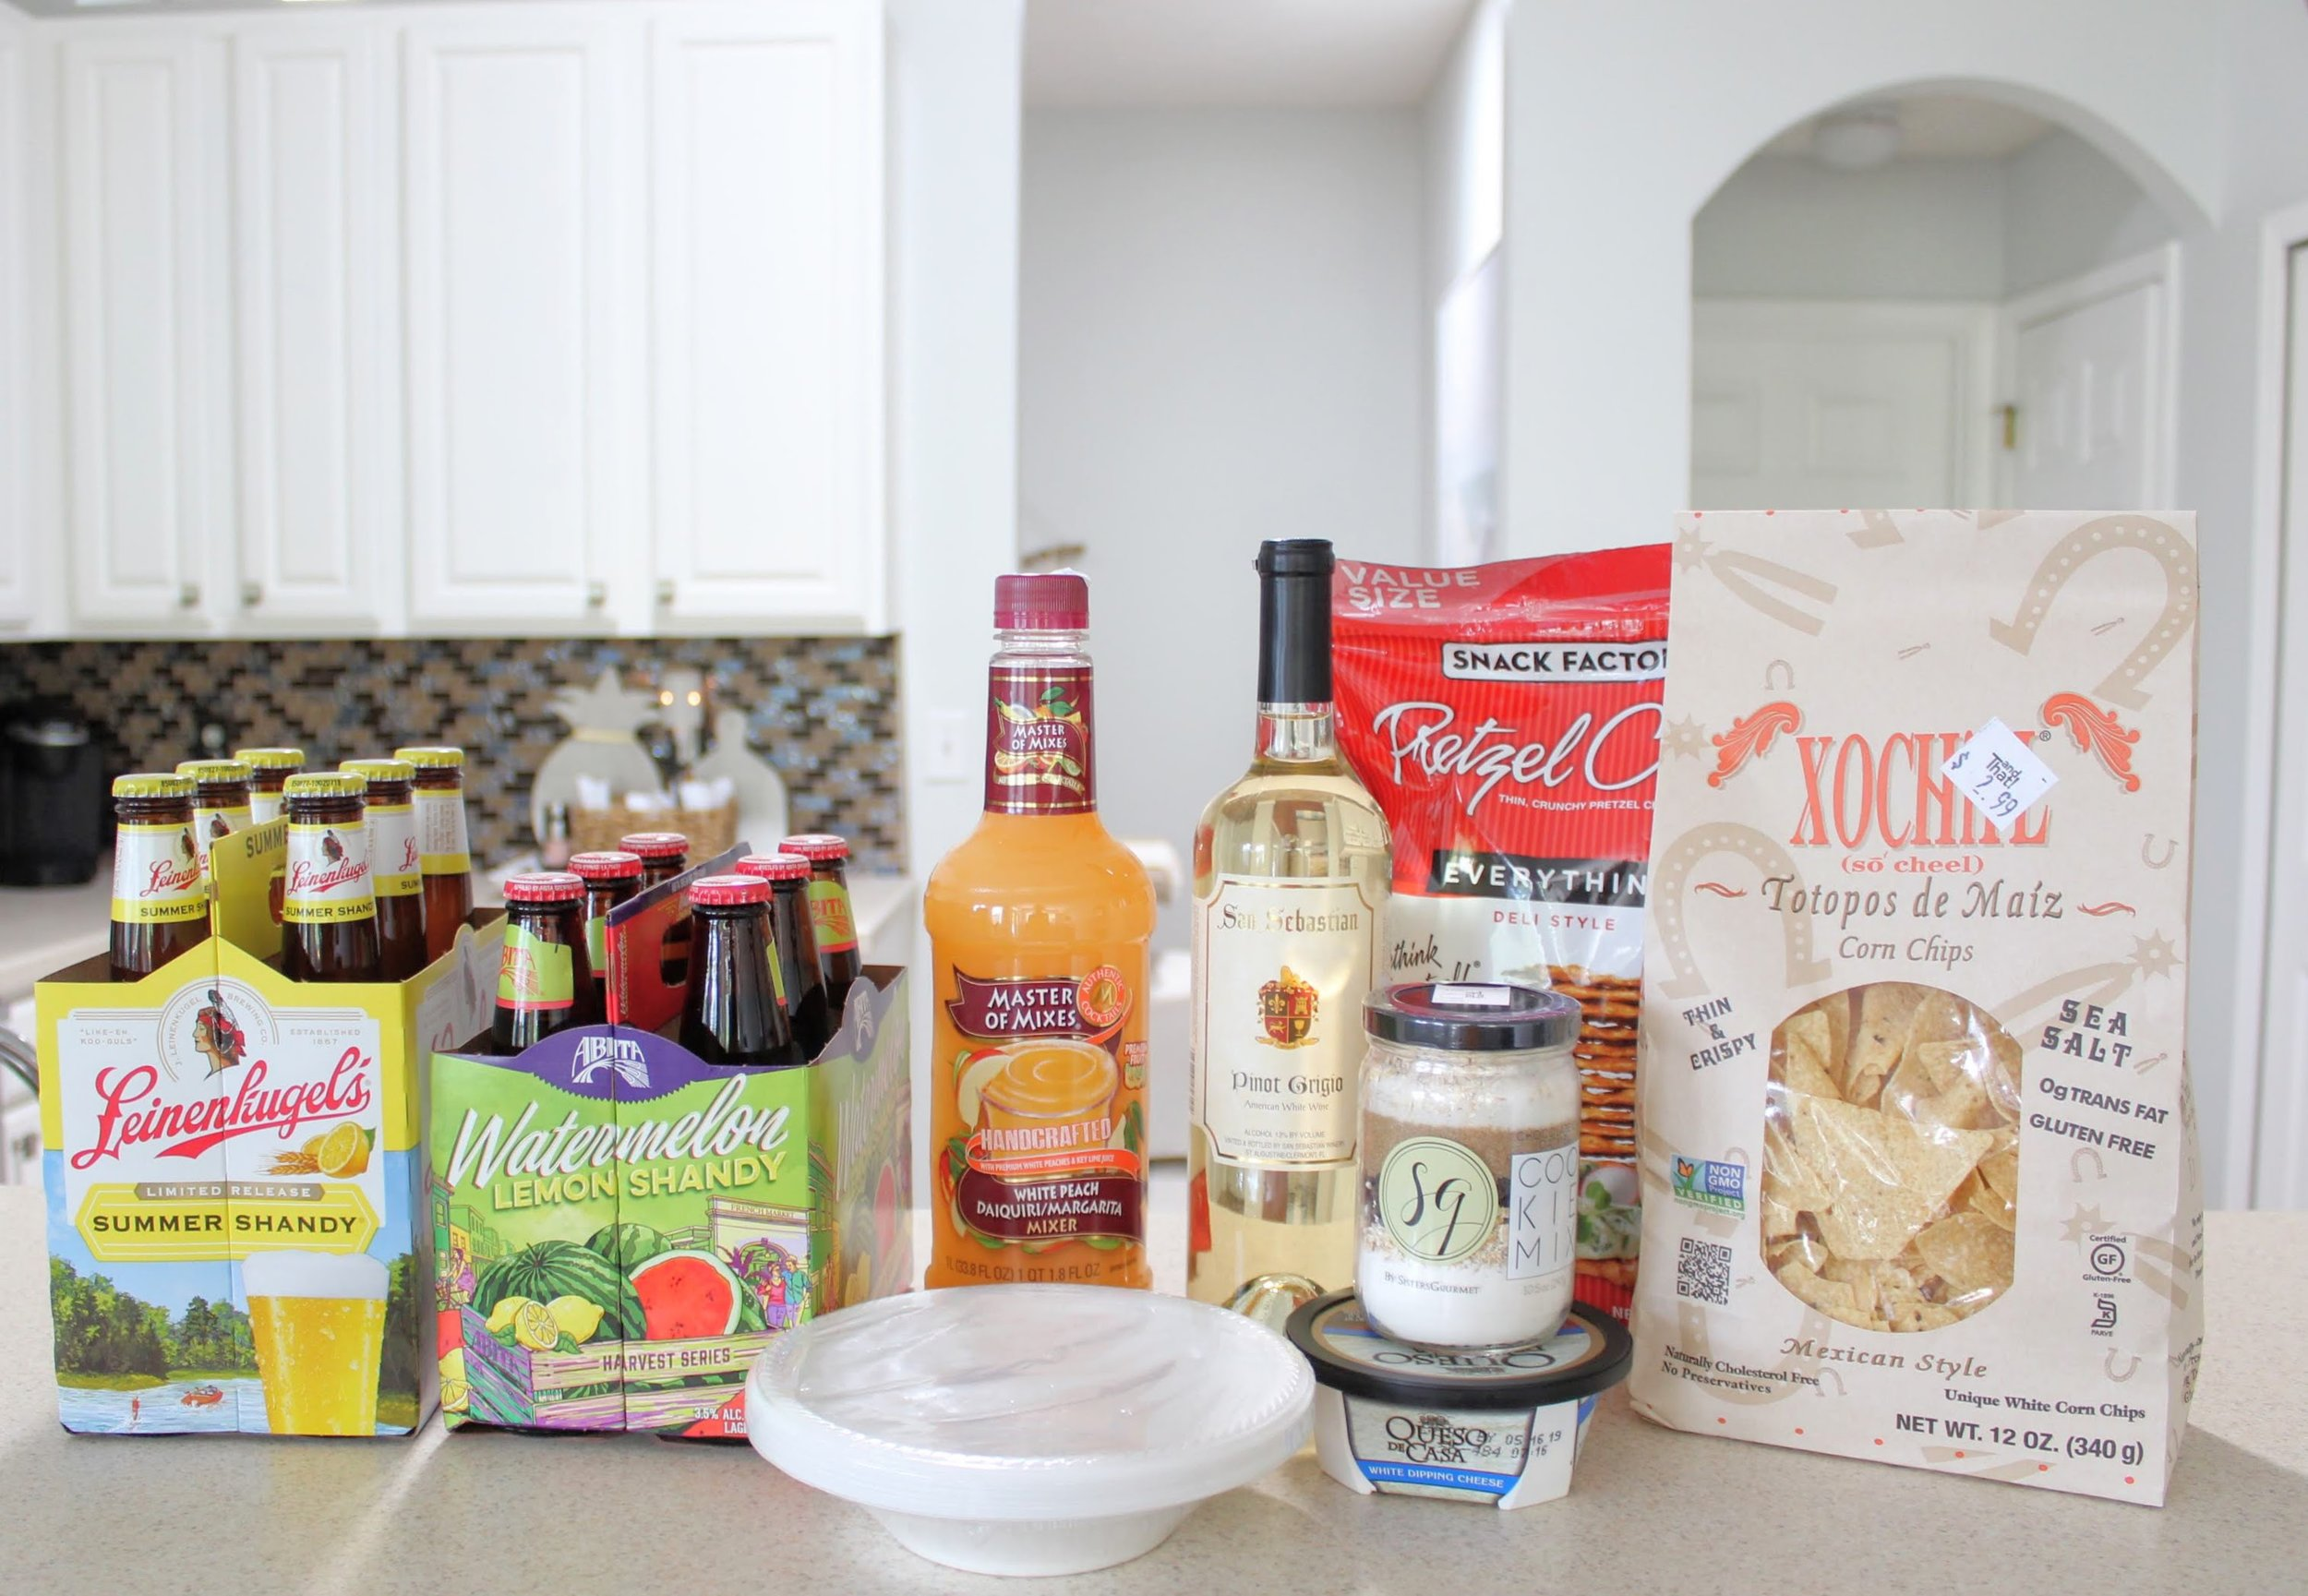 Entertaining for Under $50: Tasty Treats and Delicious Drinks! andThat! fun finds, retro snacks, popcorn, alcohol, beer, summer beer flavors, cocktail ideas, St. Augustine San Sebastian wine, snacks, party planning on a budget #housefullofsummer #andthatfunfinds #sponsored